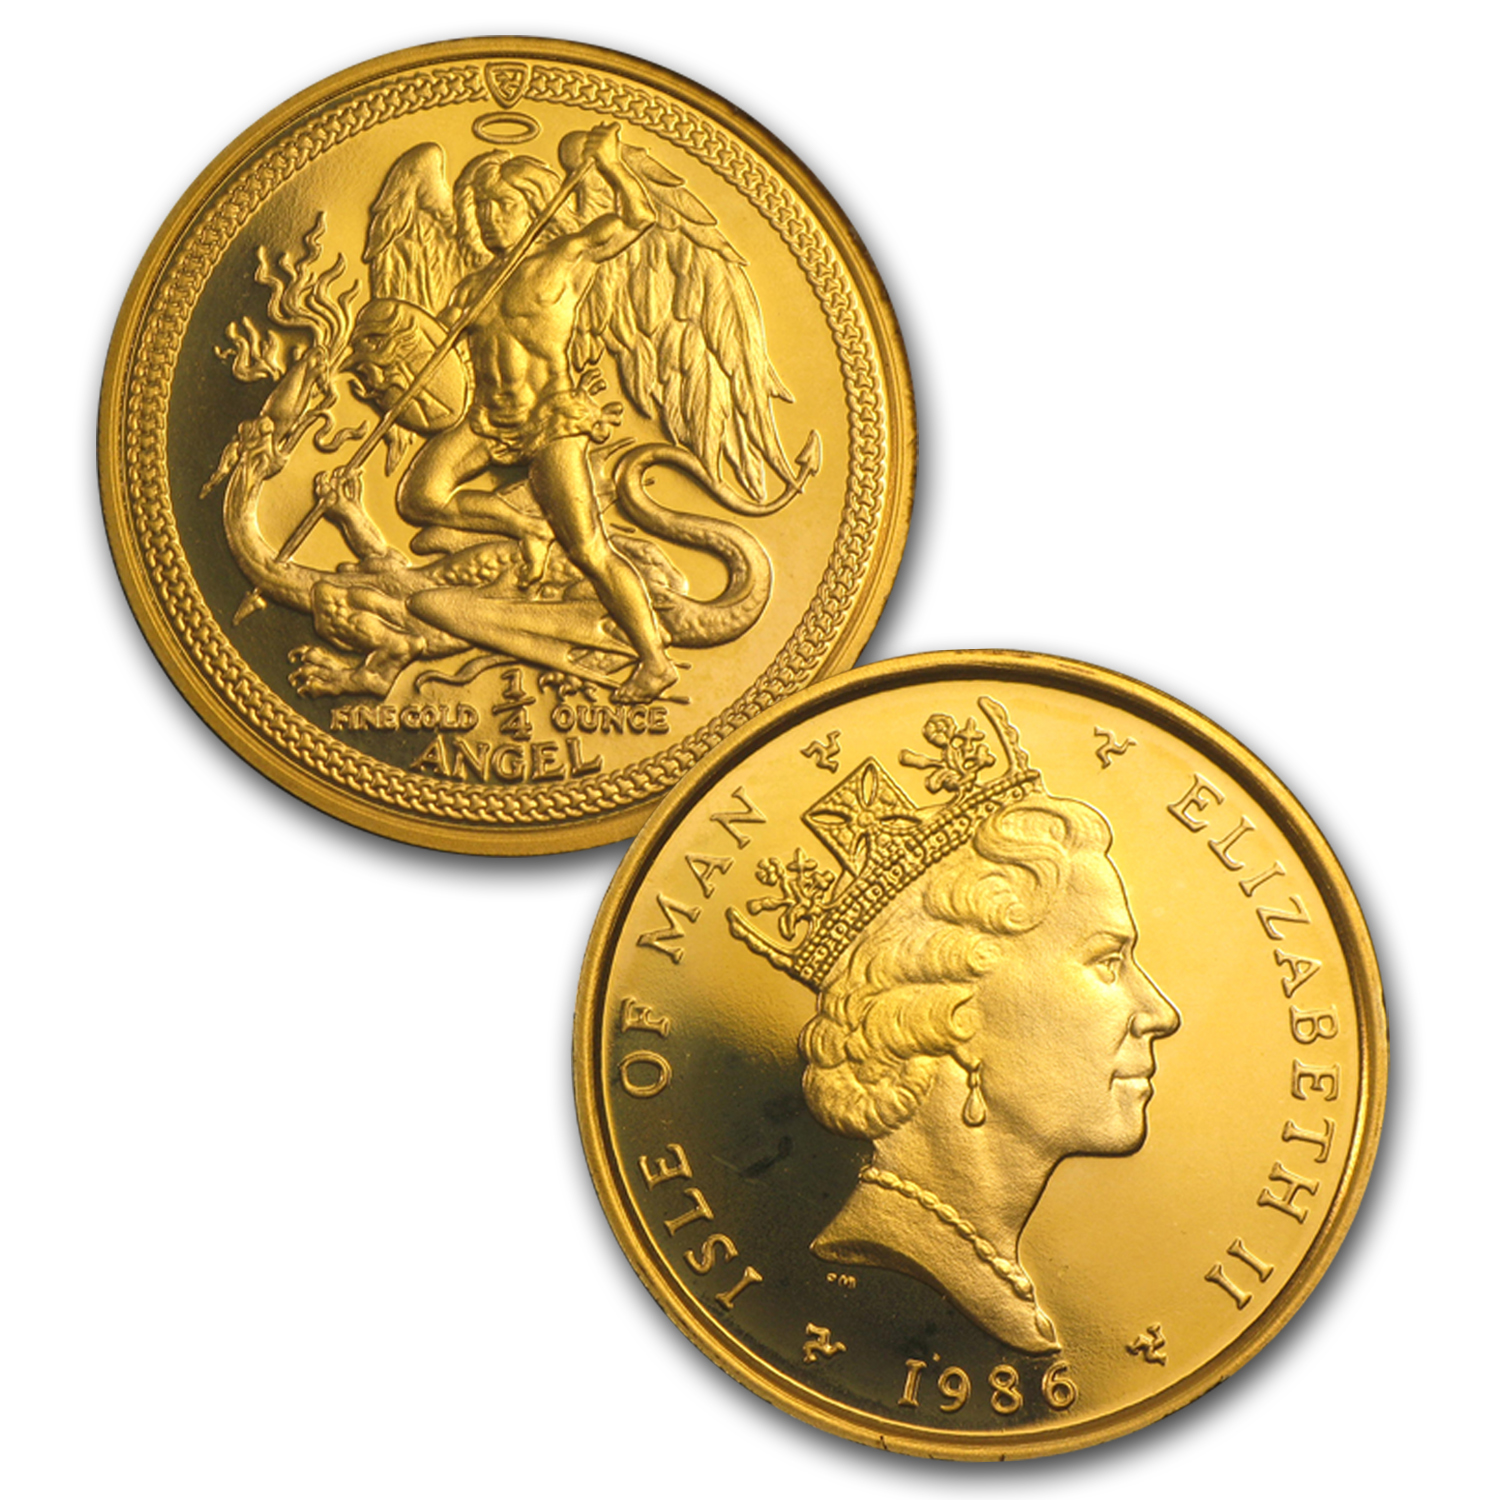 1986 Isle of Man Angel 5-Coin Gold Proof Set